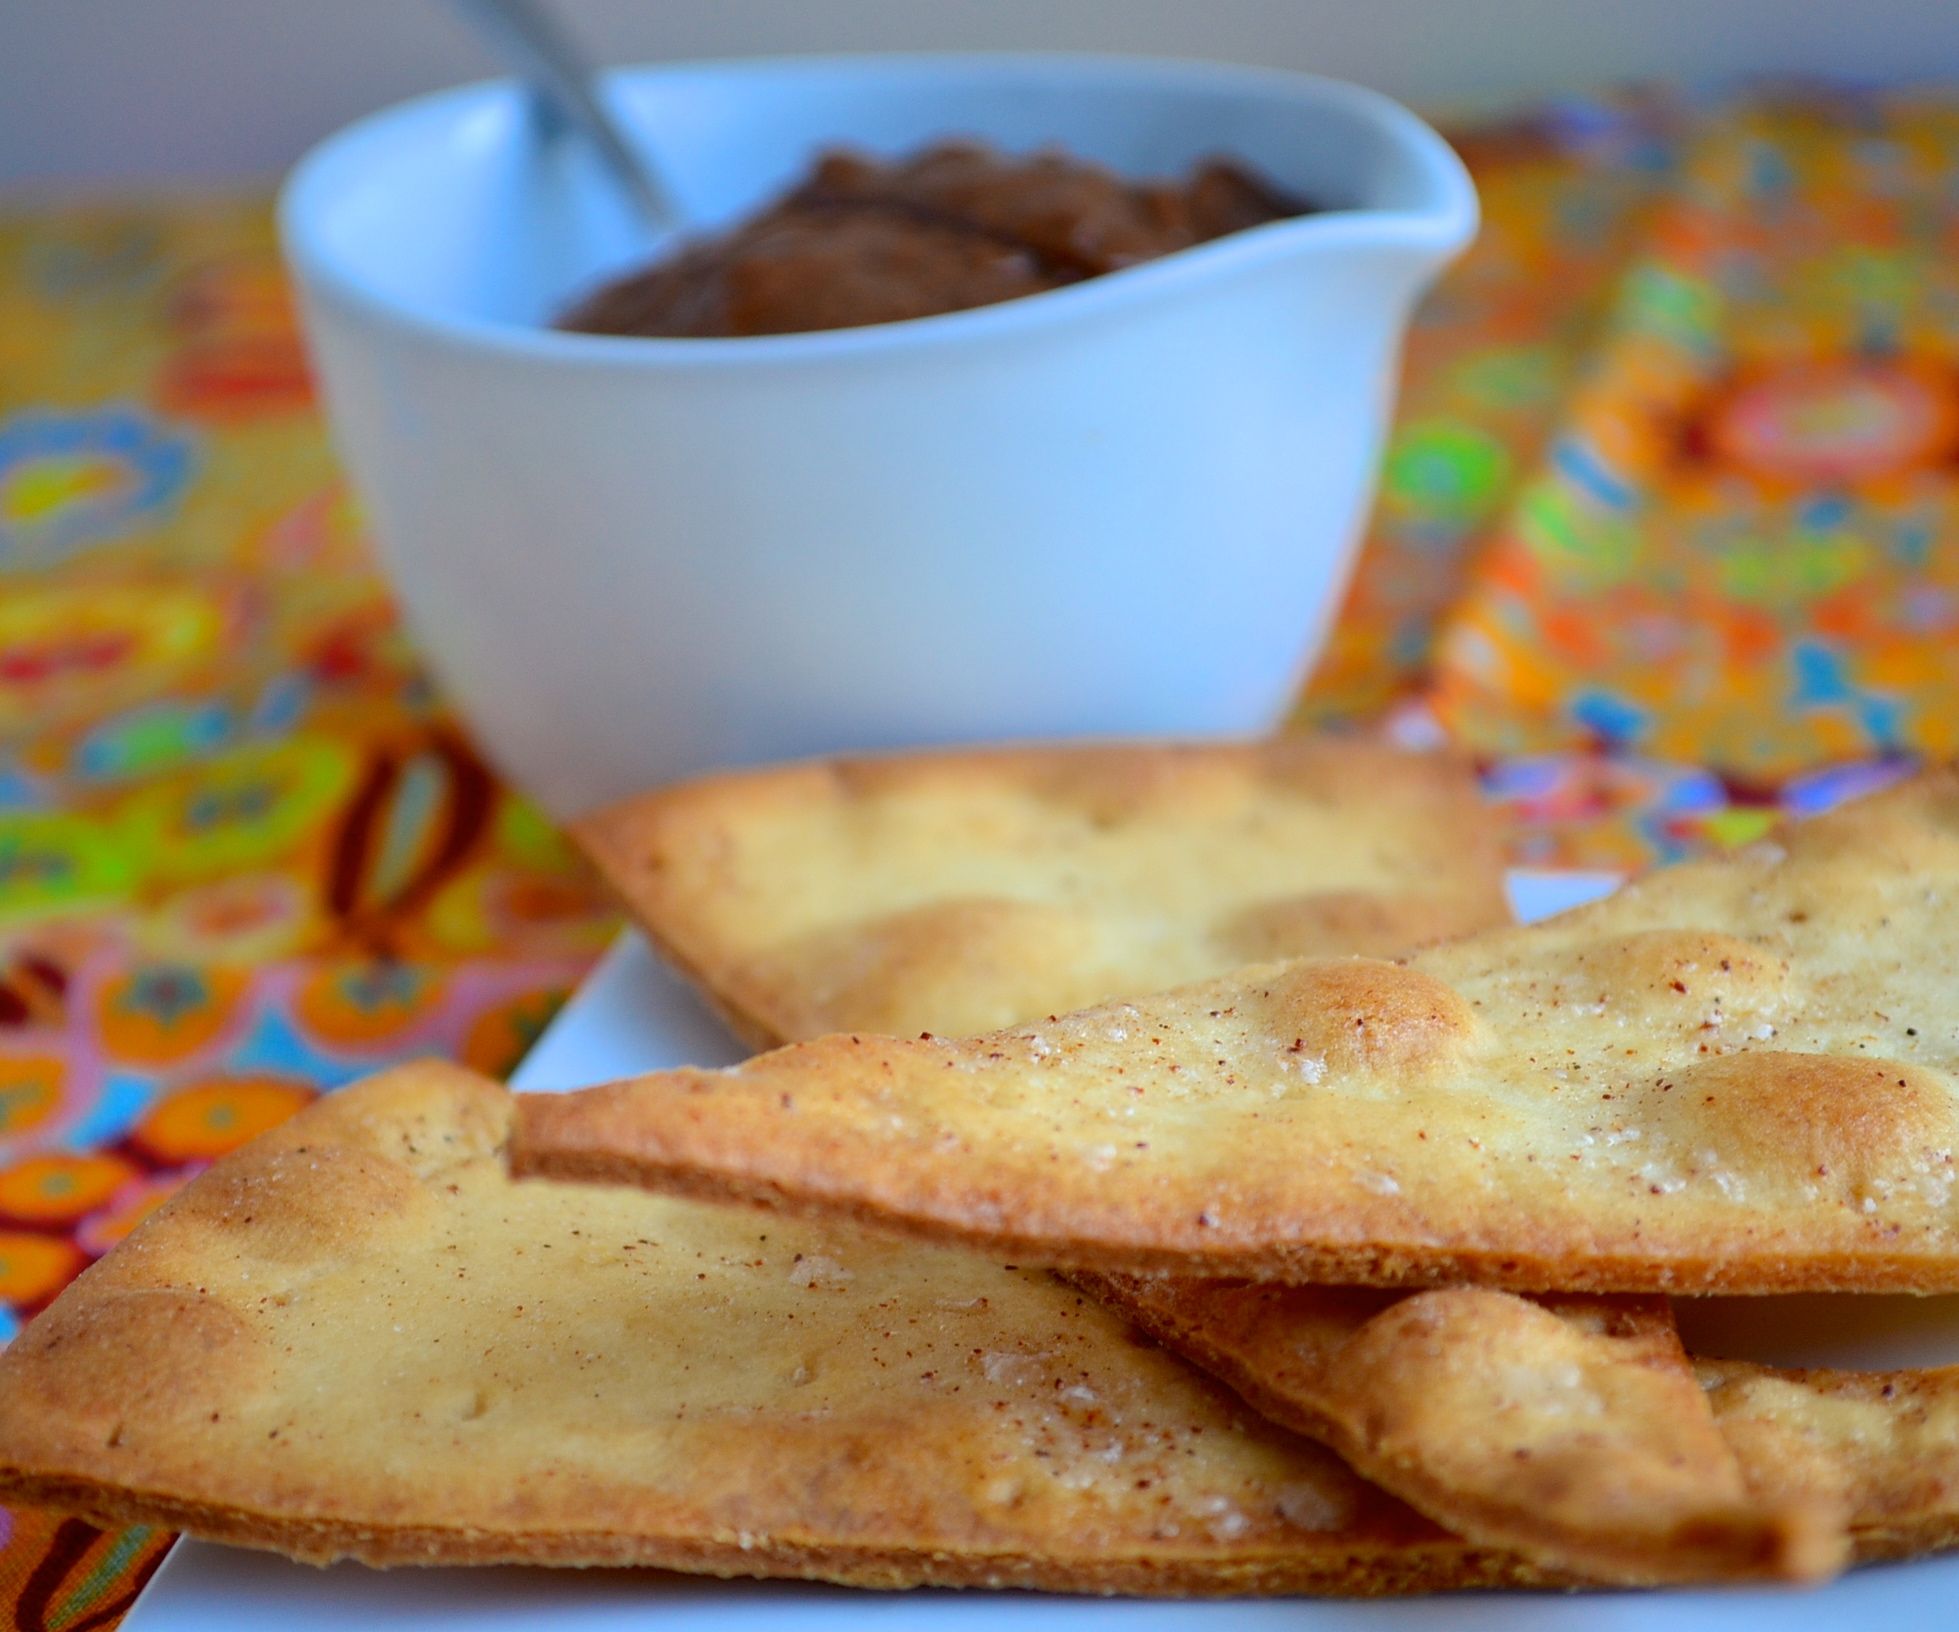 Gluten free pizza chips with chocolate peanut butter dip